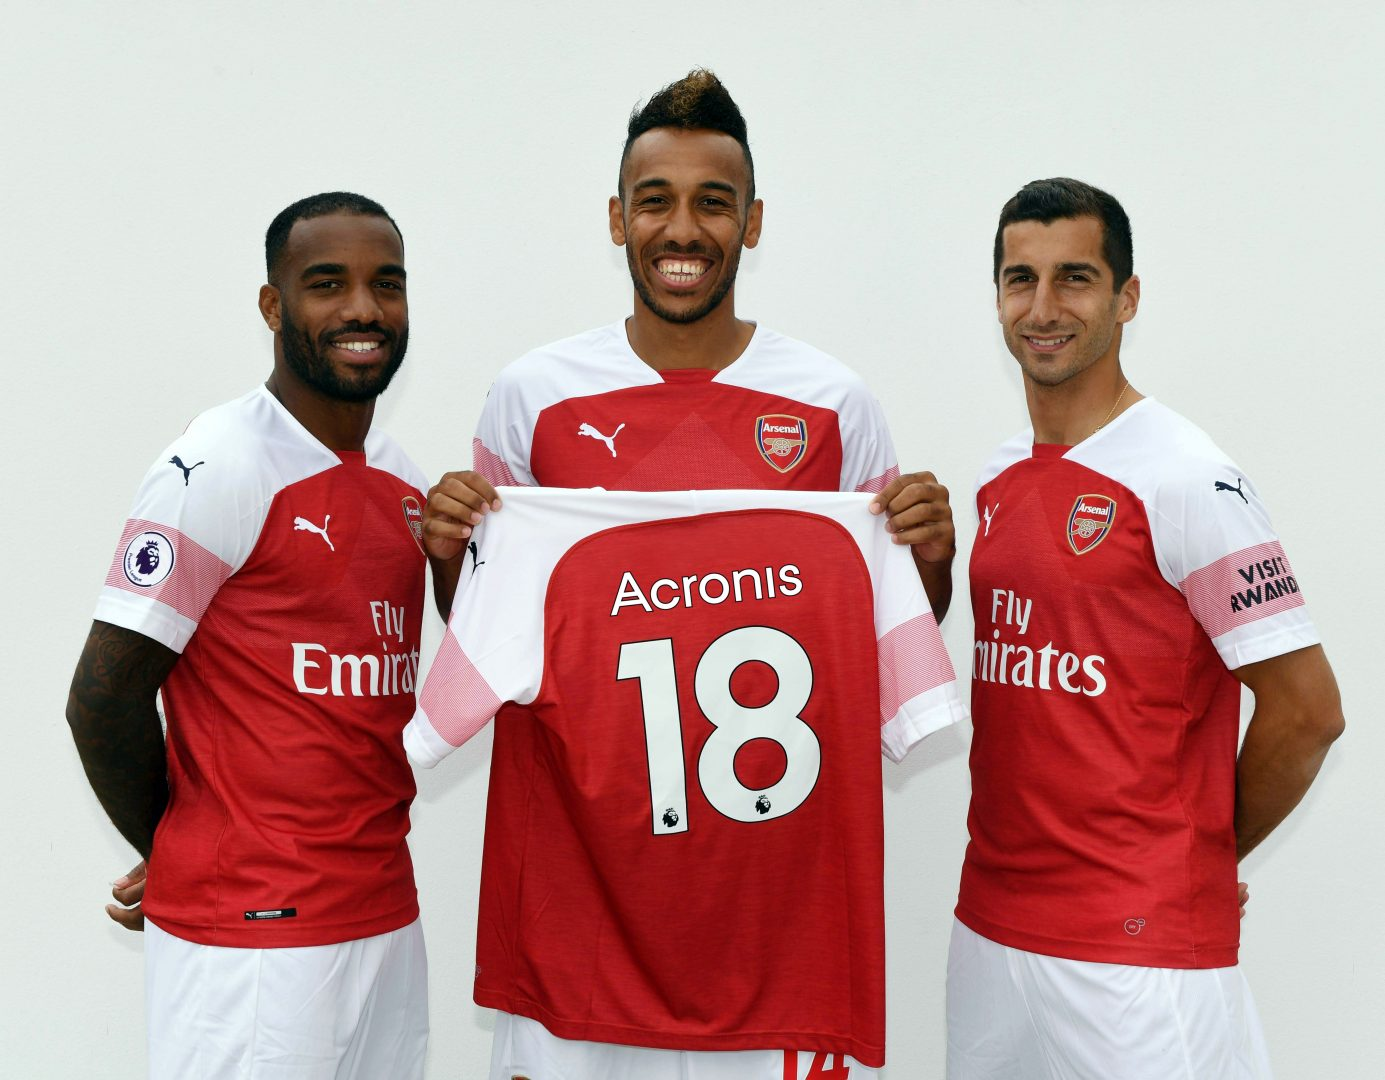 Acronis annuncia la partnership tecnologica con l'Arsenal Football Club thumbnail